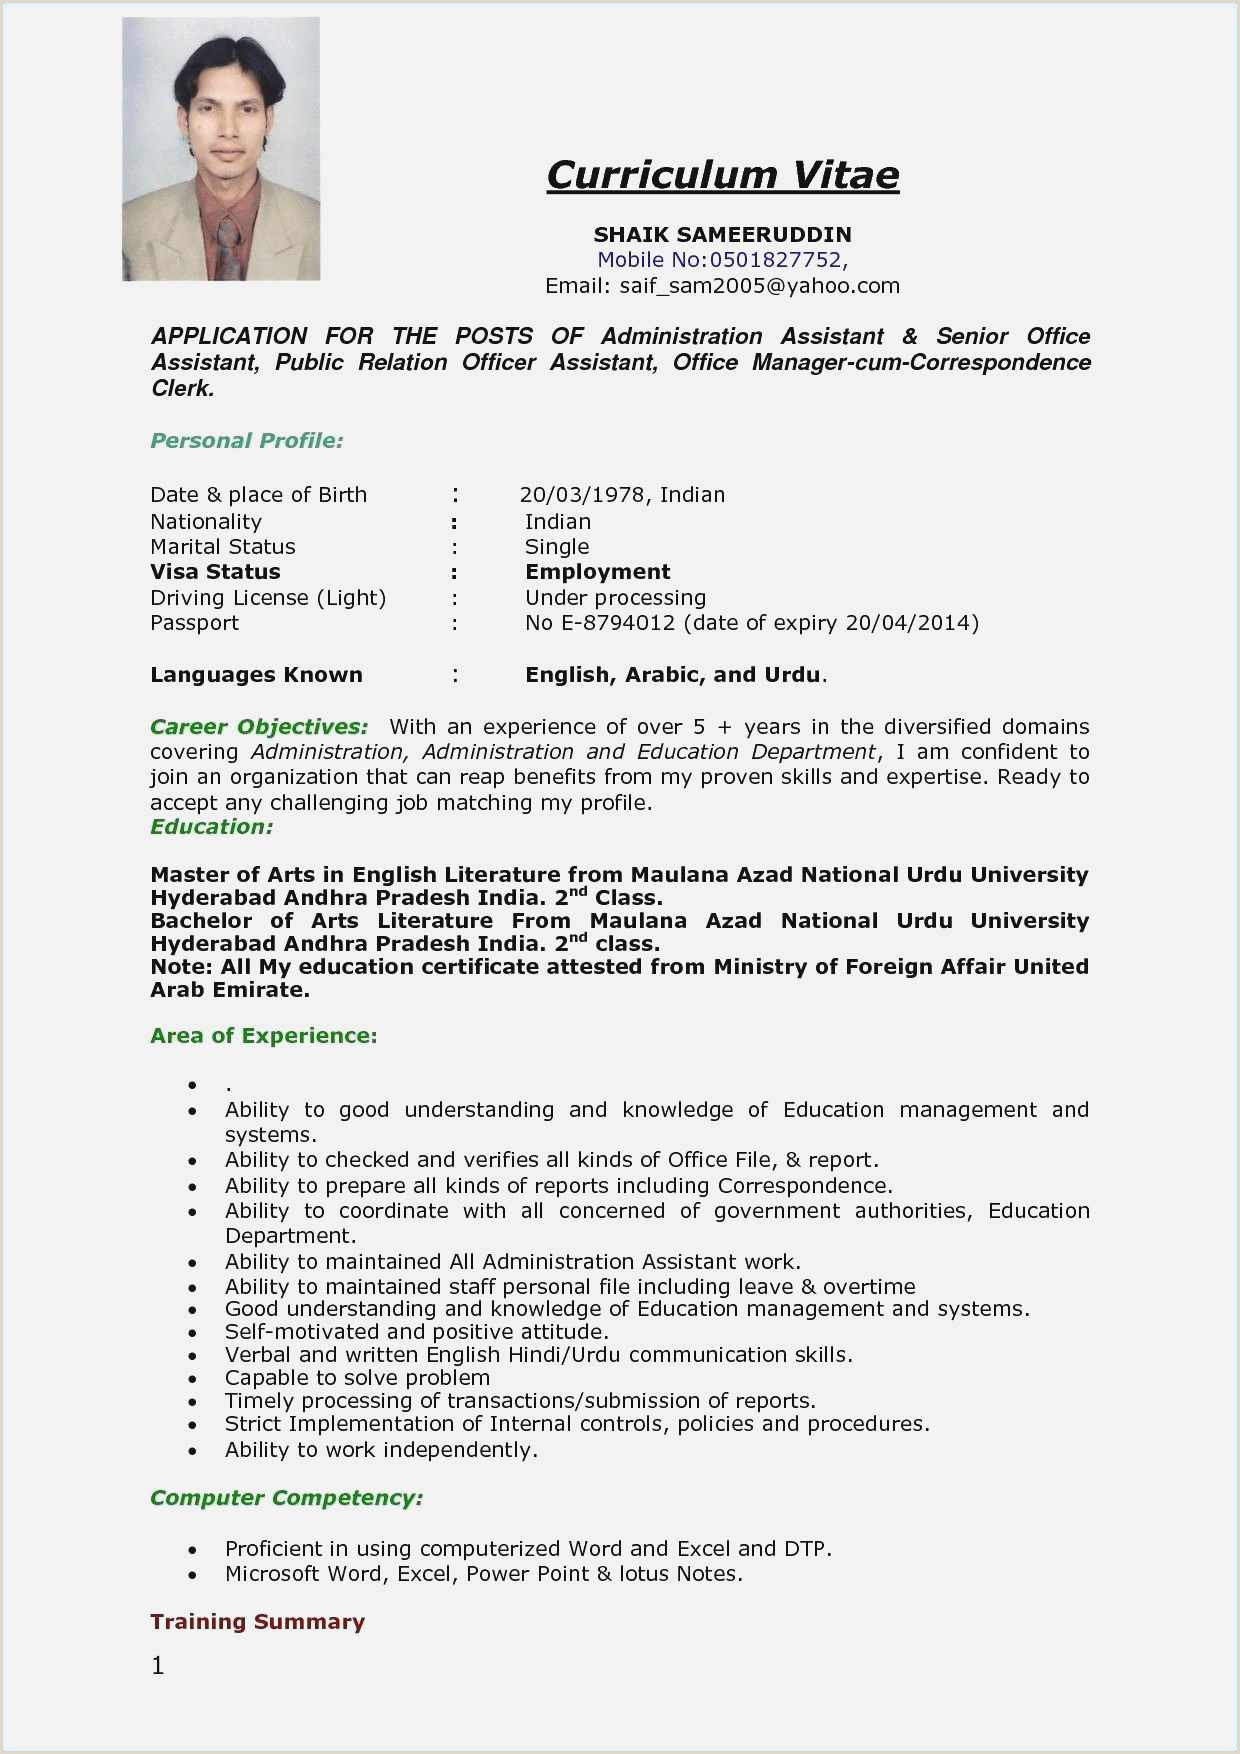 Resume format for Office Job Free Curriculum Vitae Examples Construction Beautiful